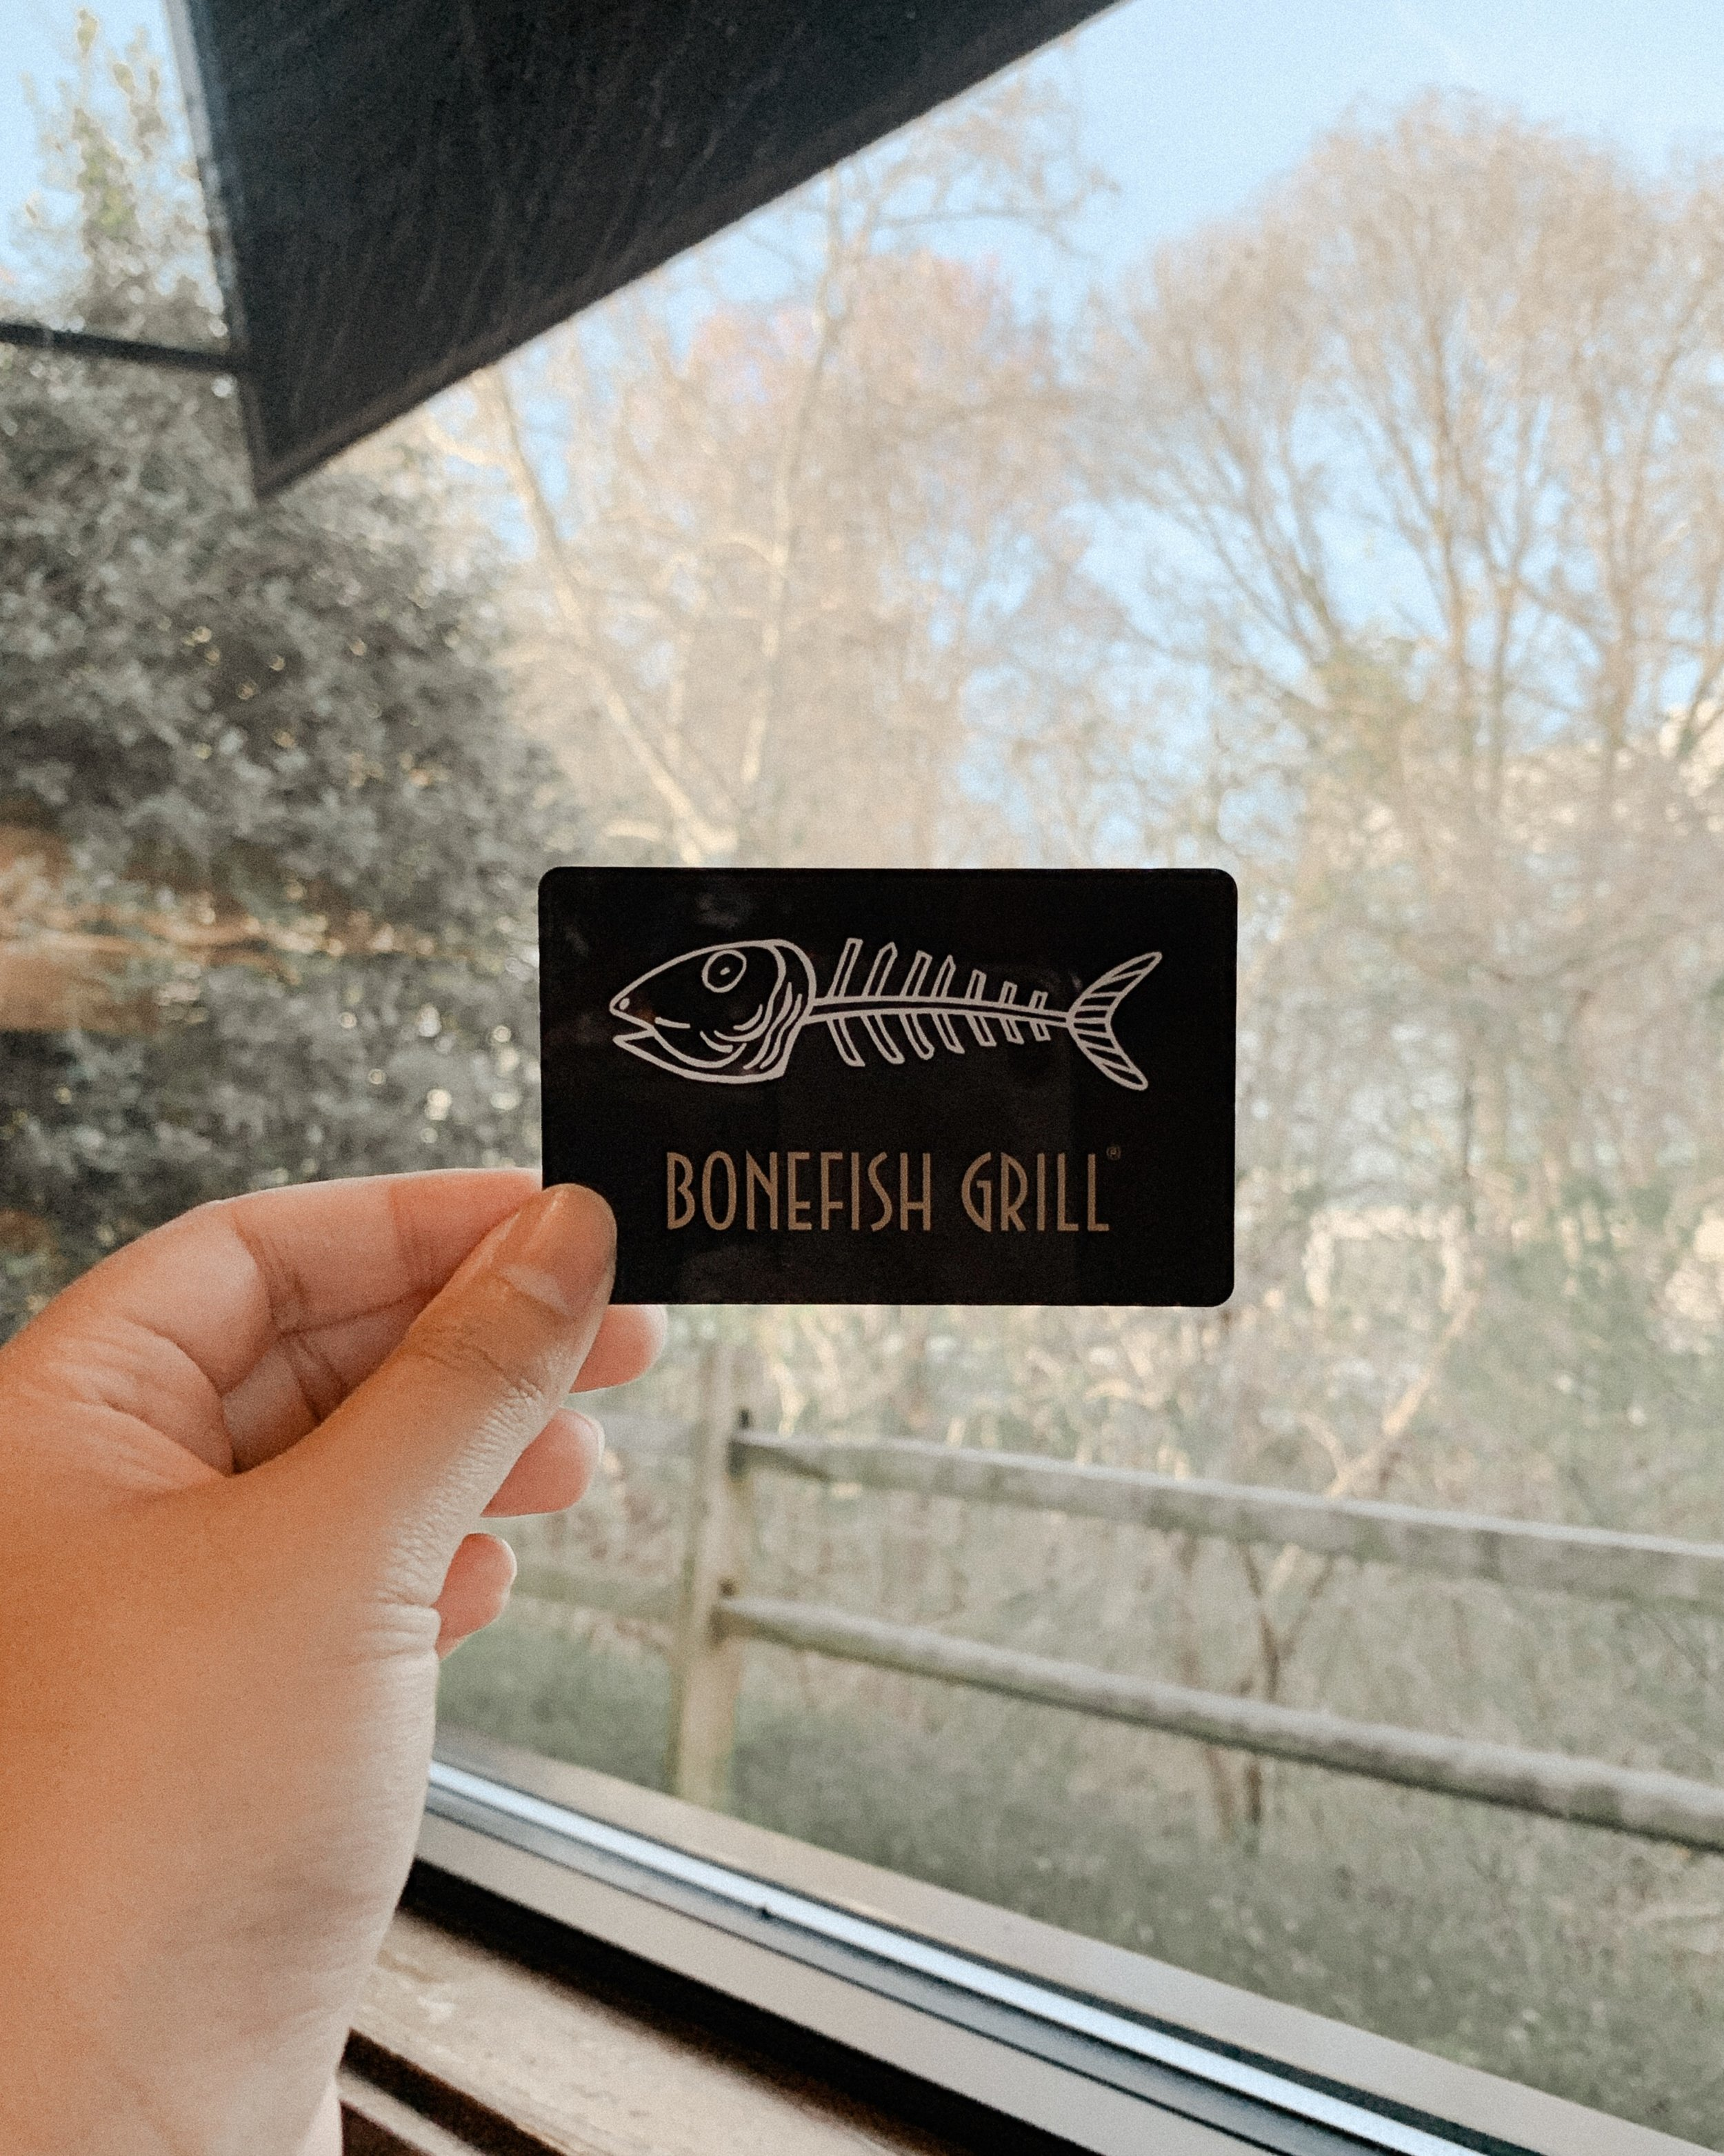 Bonefish Grill Food Review and Giveaway